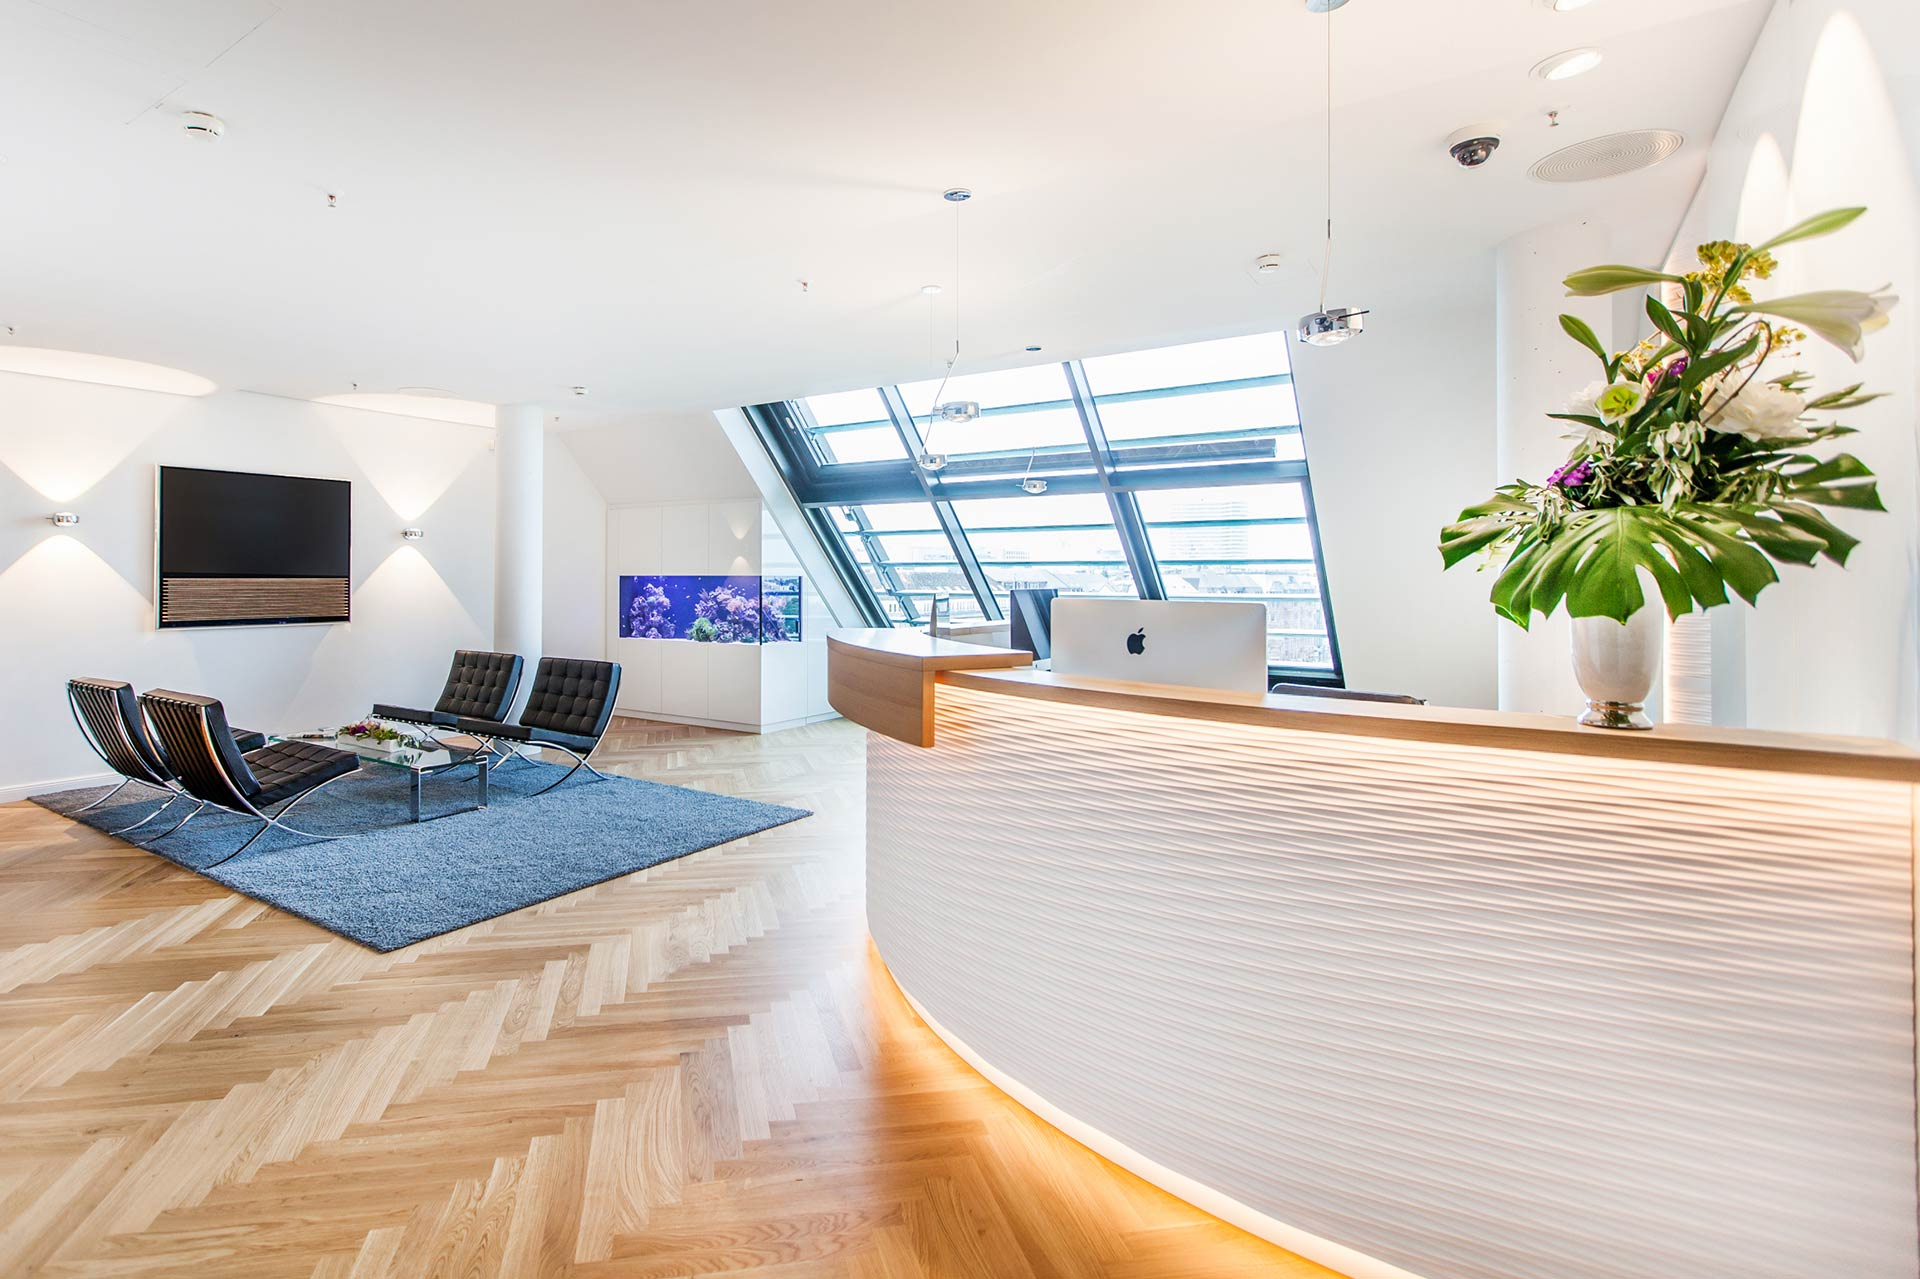 Officespace in Hamburg including reception desk and chairs